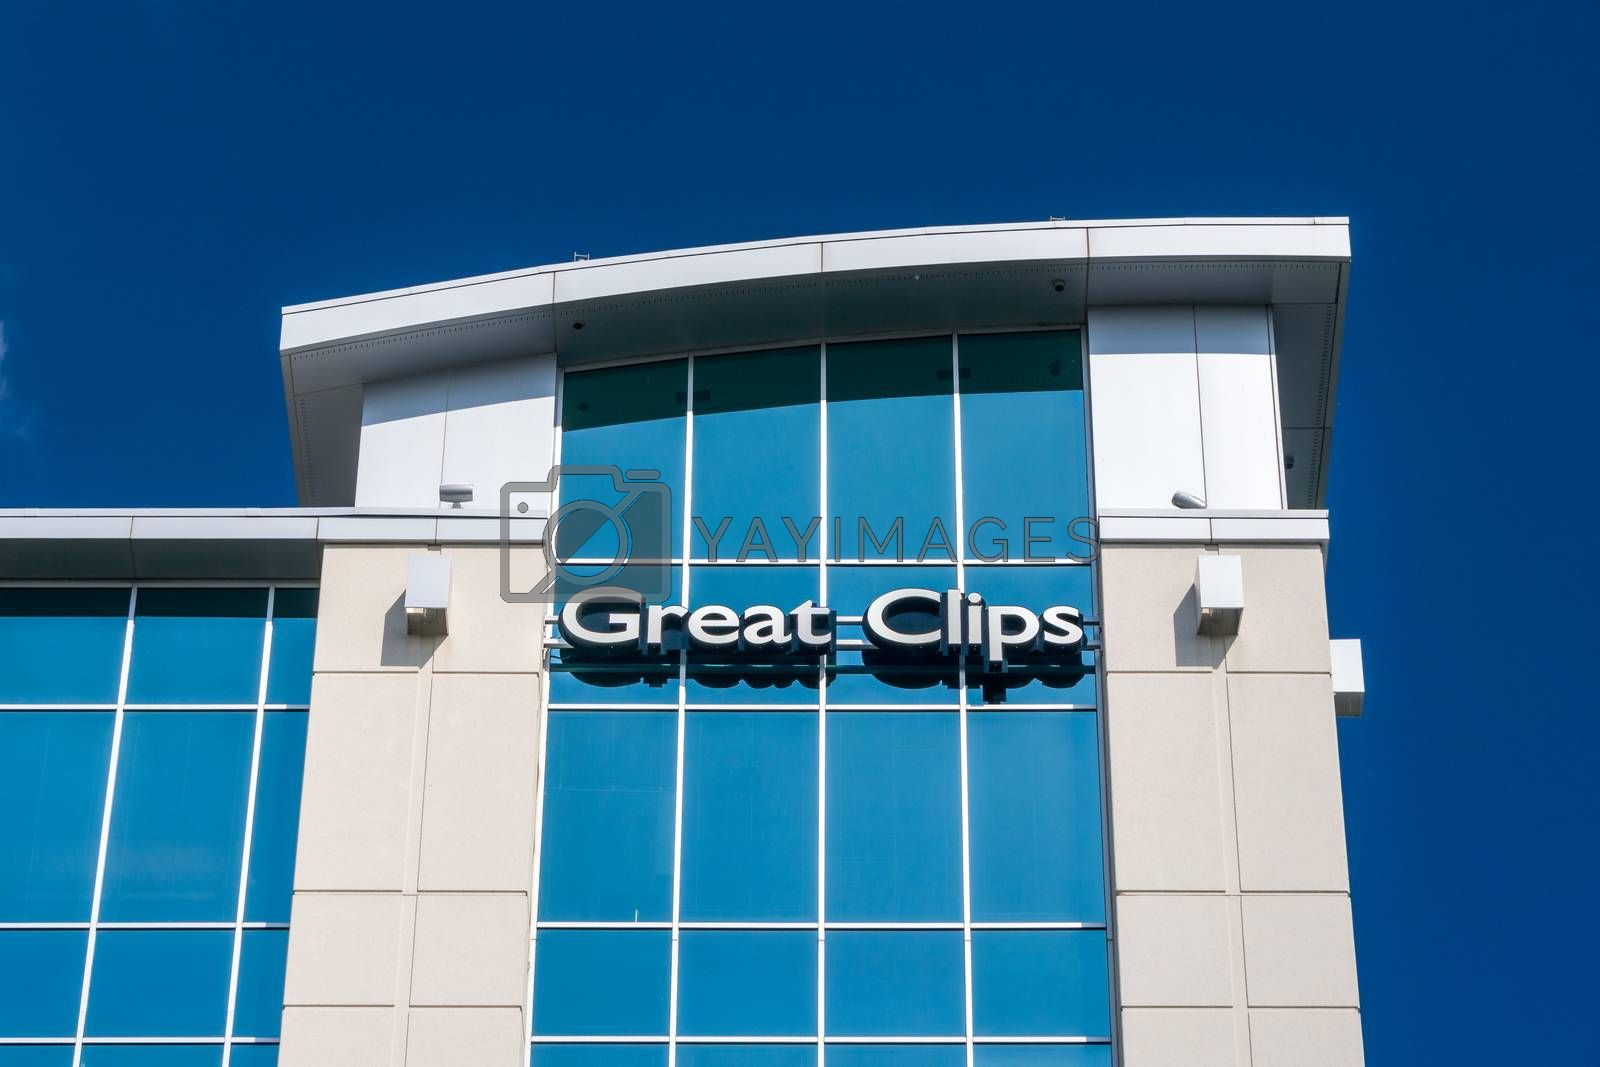 BLOOMINGTON, MN/USA - MAY 29, 2016: Great Clips corporate office headquarters. Great Clips is a hair salon franchise with over 3,700 locations across the United States and Canada.